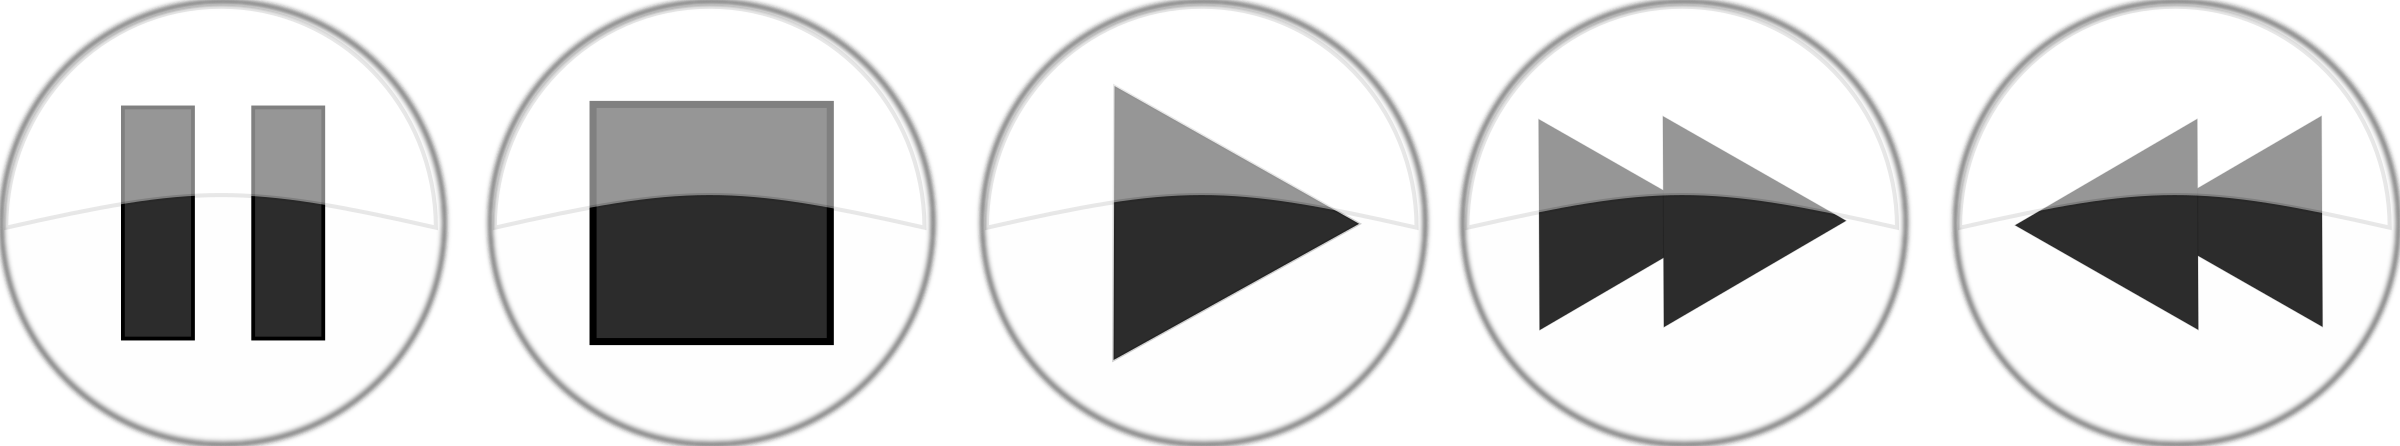 Play pause stop png. Glossy media player buttons